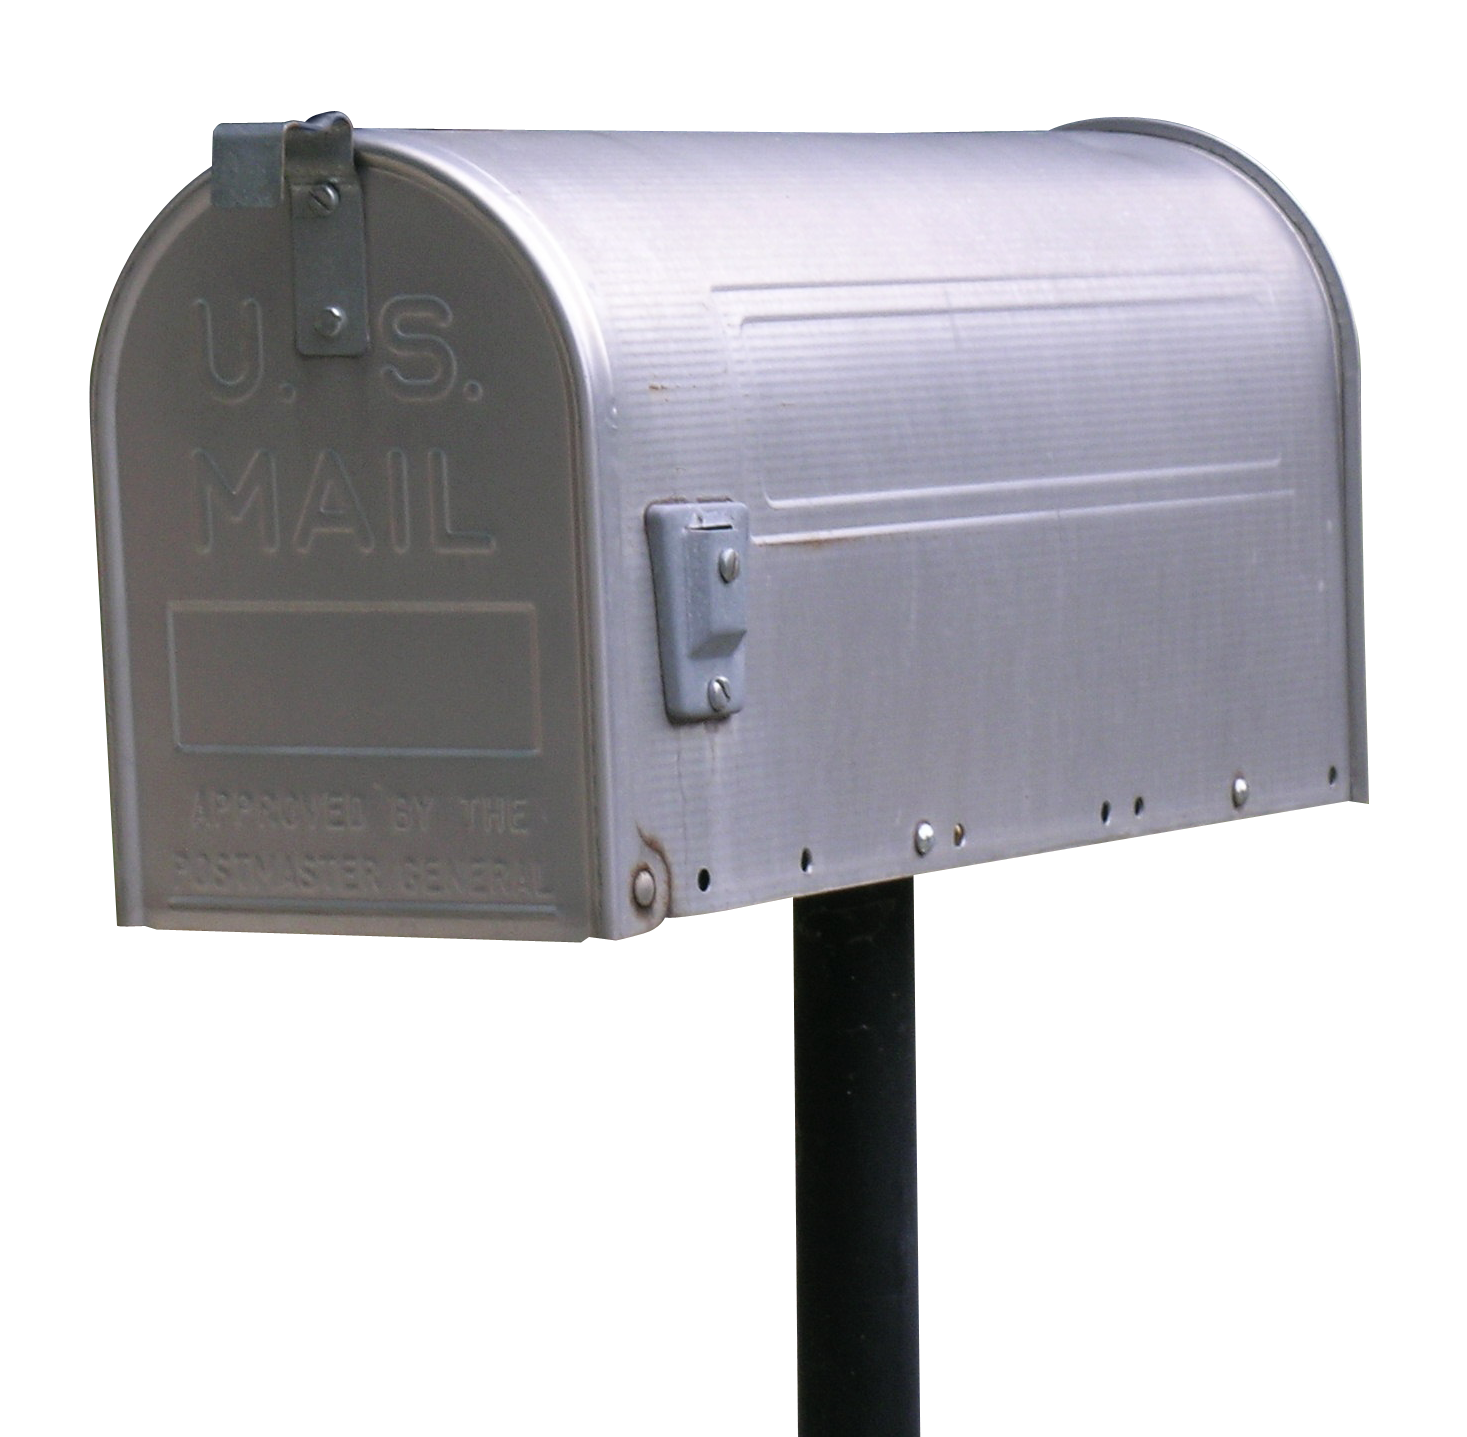 Png transparent images pluspng. Mailbox clipart empty mailbox